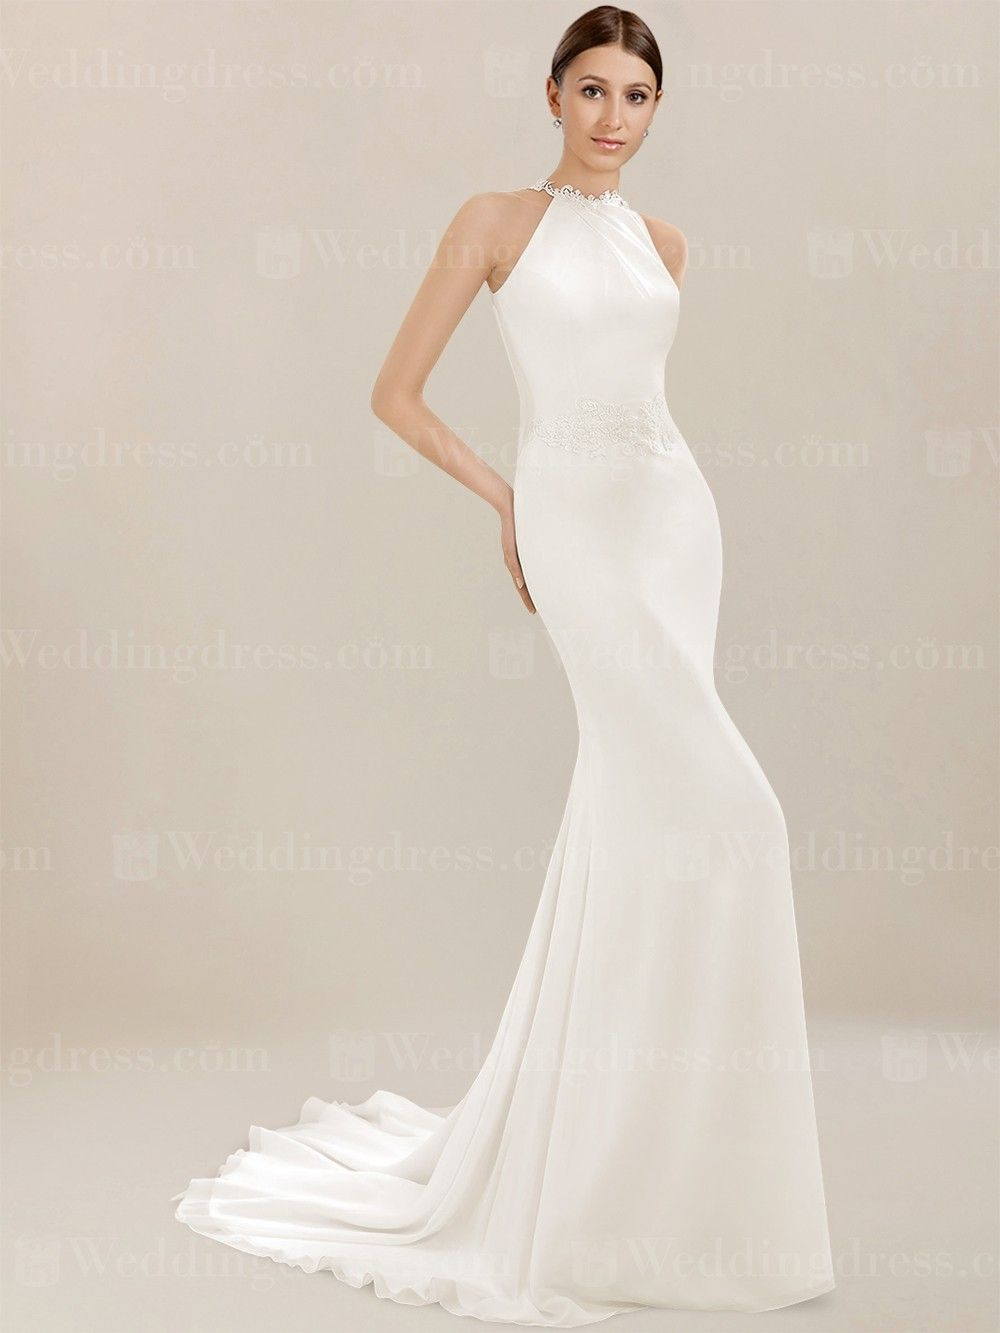 Chiffon Beach Wedding Dress Is A Fit And Flare Gown The High Neckline Features Lace Edging While Continuing To The Illusion Lace And Cowl Ba Wedding Dresses Lace Beach Wedding Dress